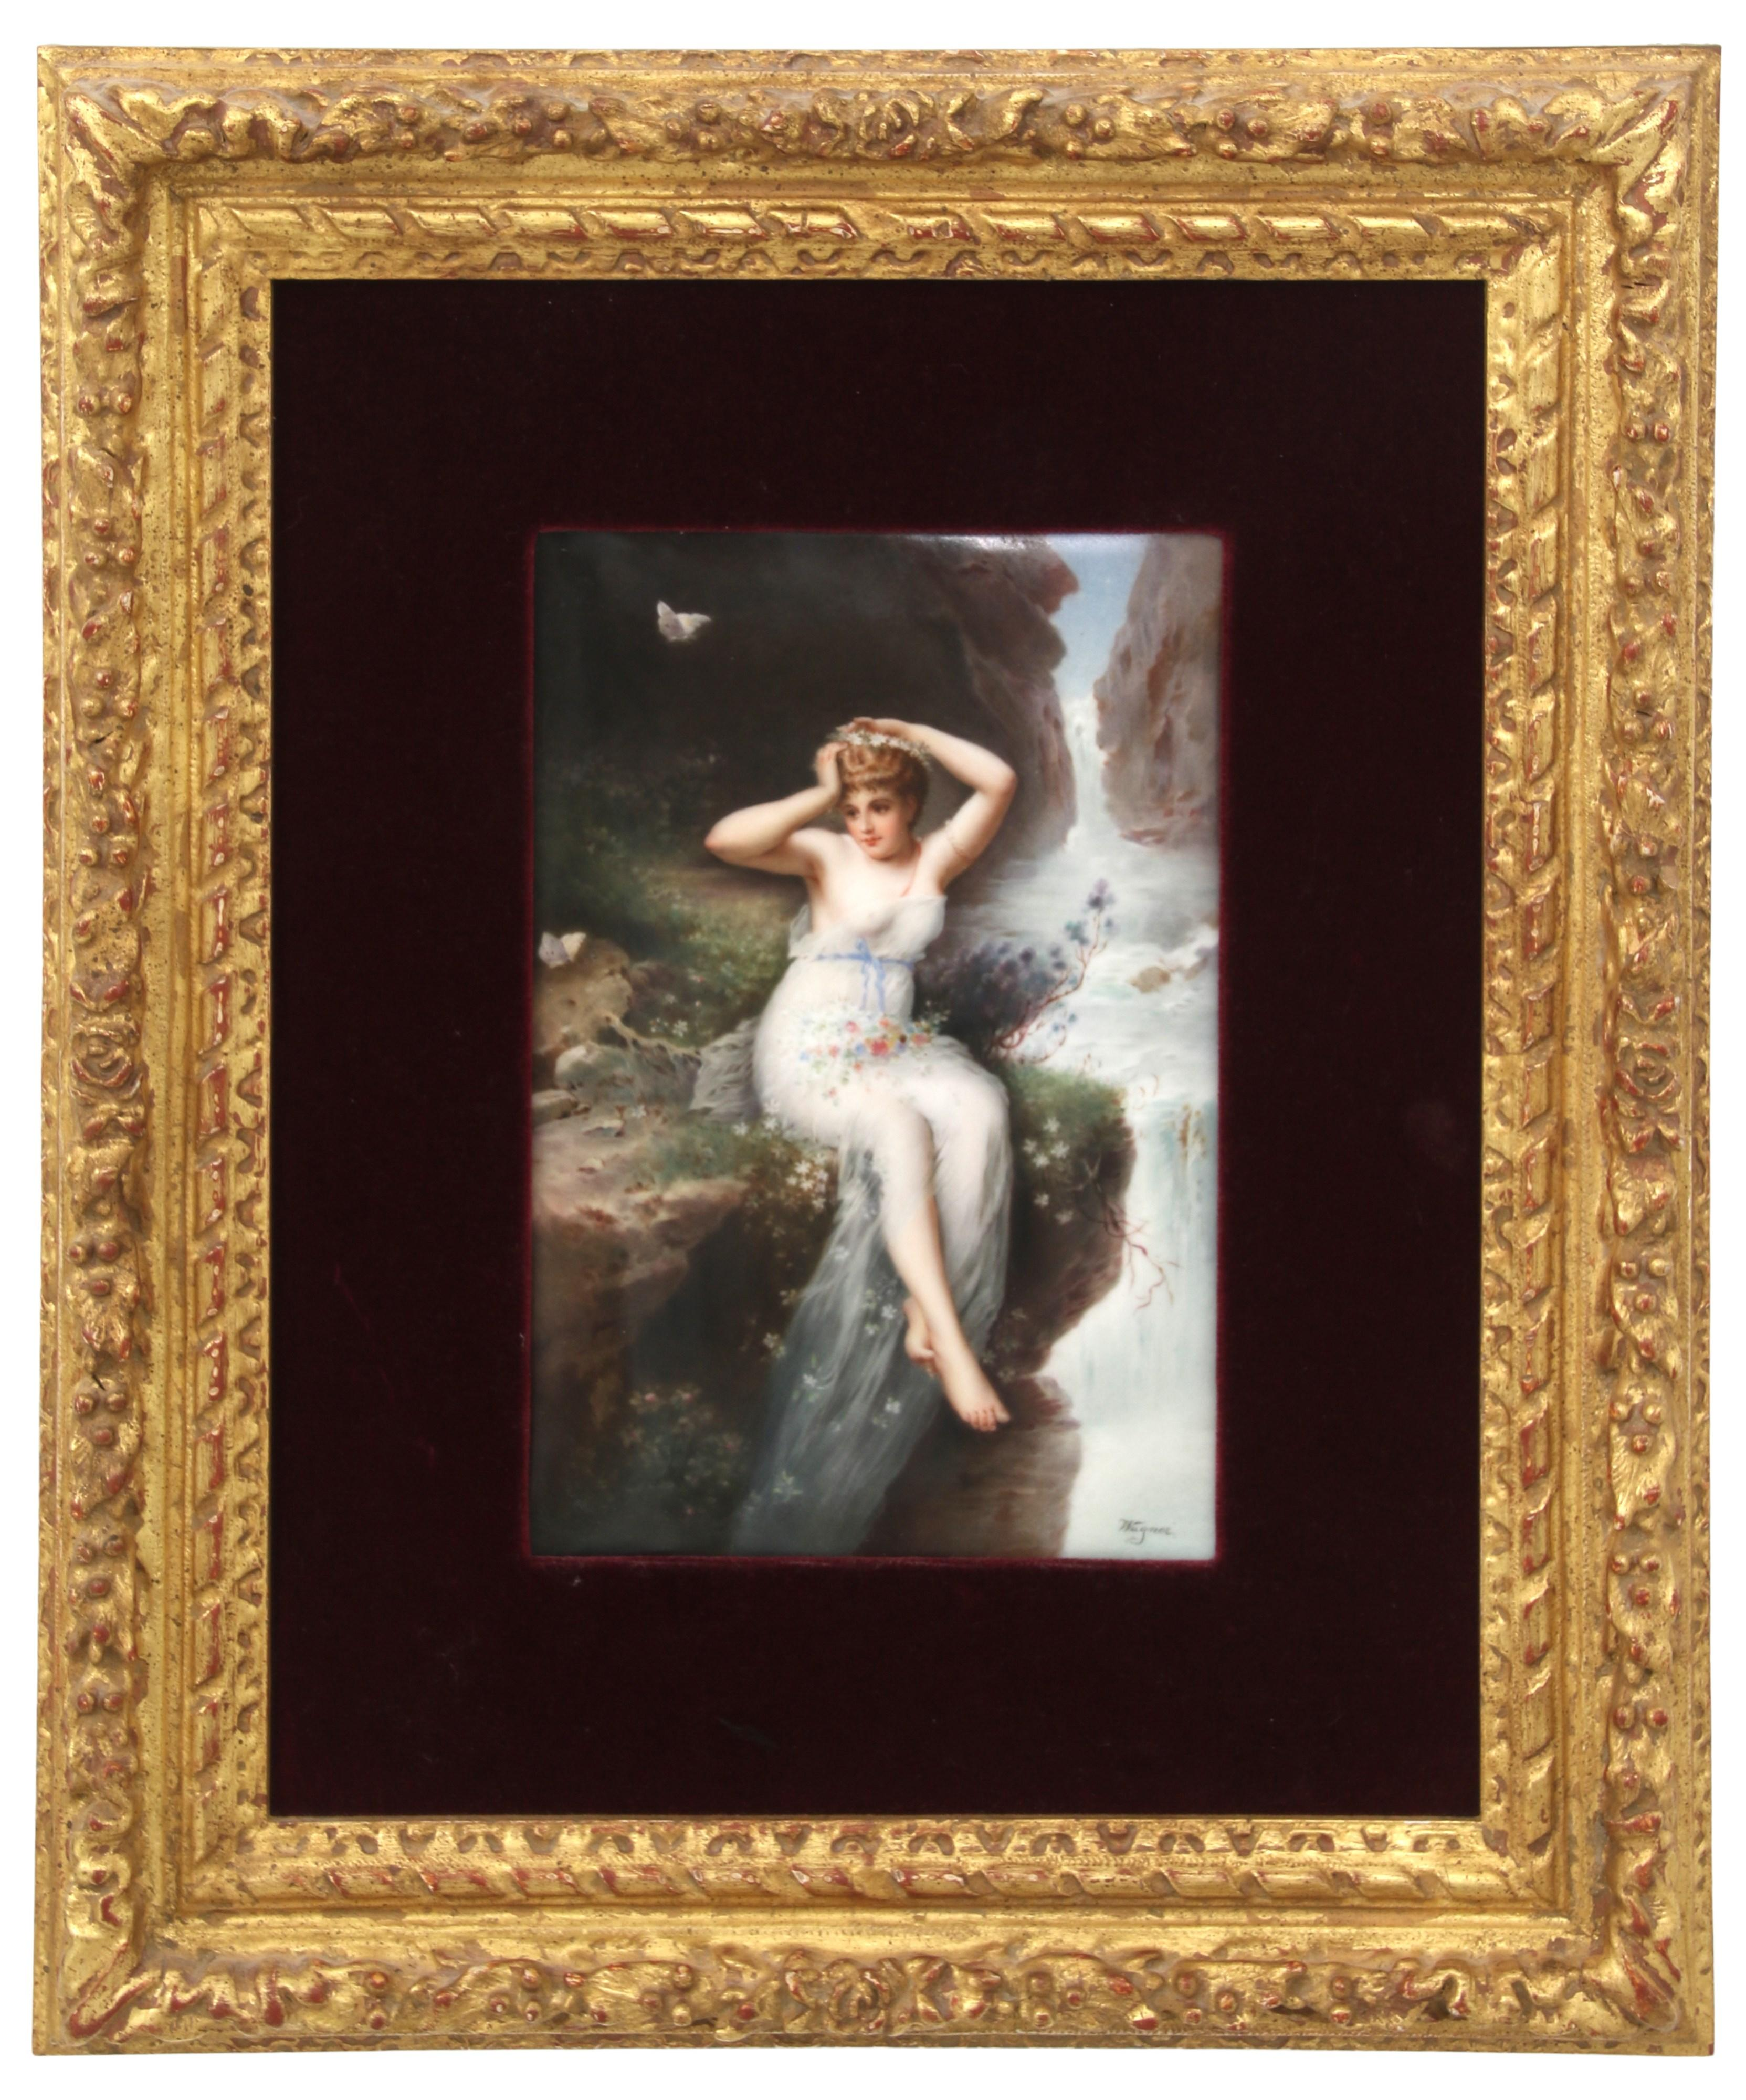 KPM Porcelain Plaque of a Woman by a Waterfall